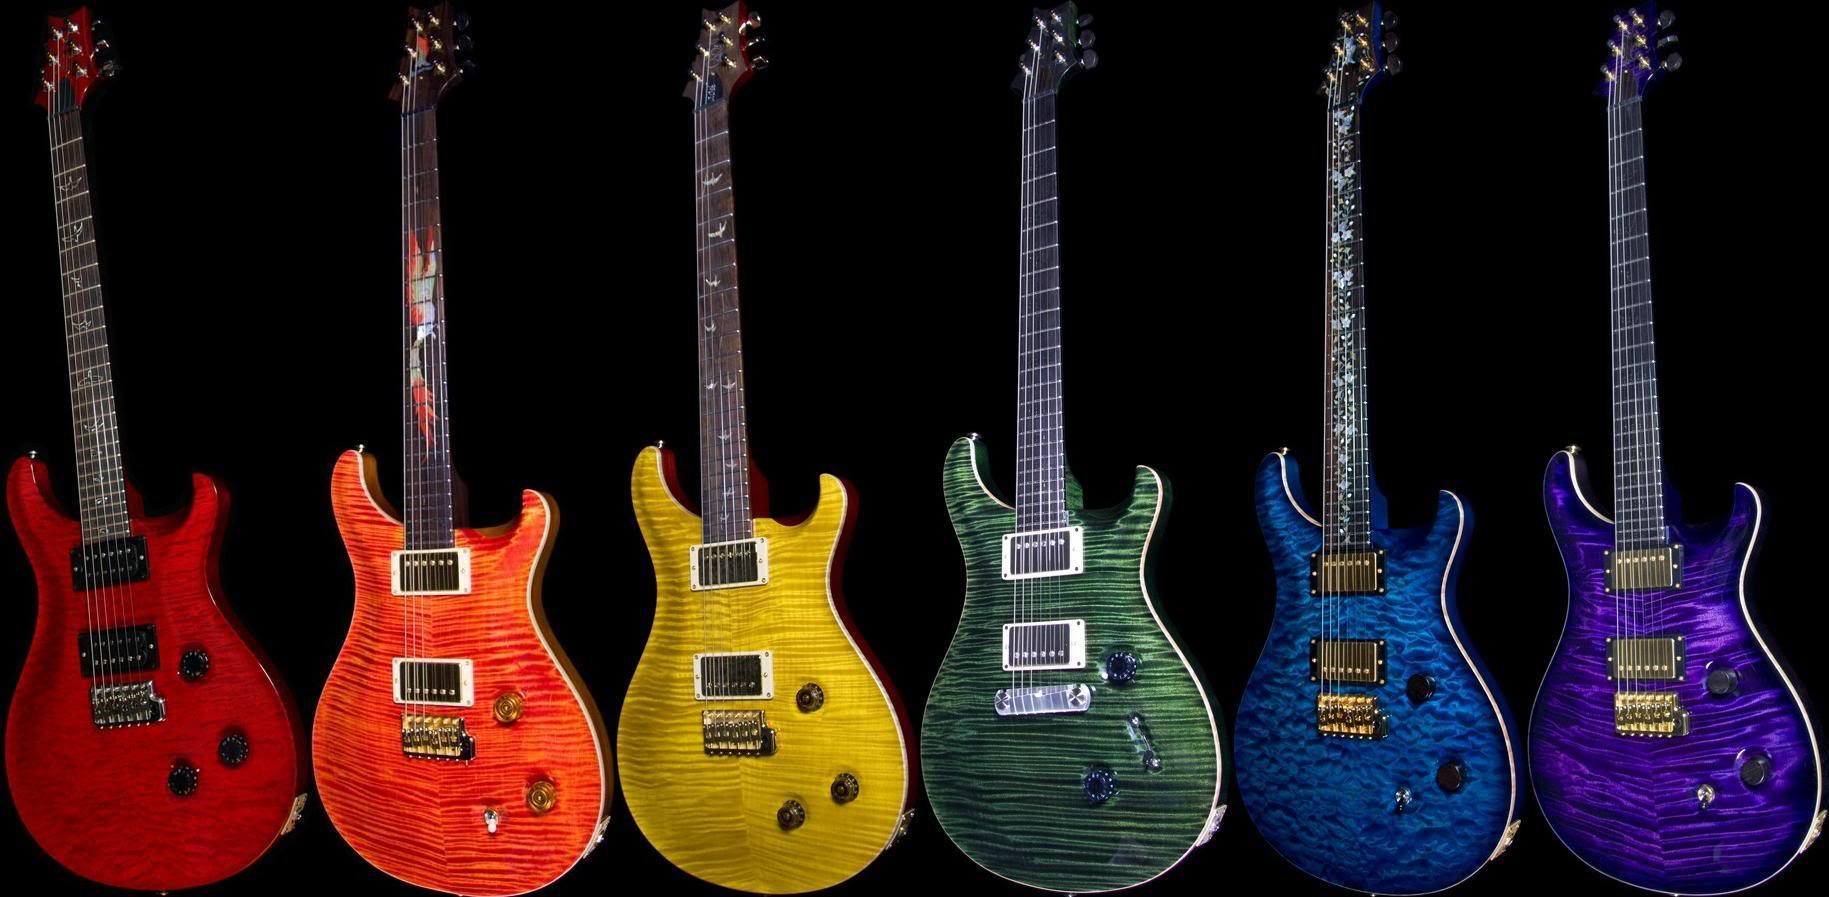 paul reed smith wallpaper 1829x897